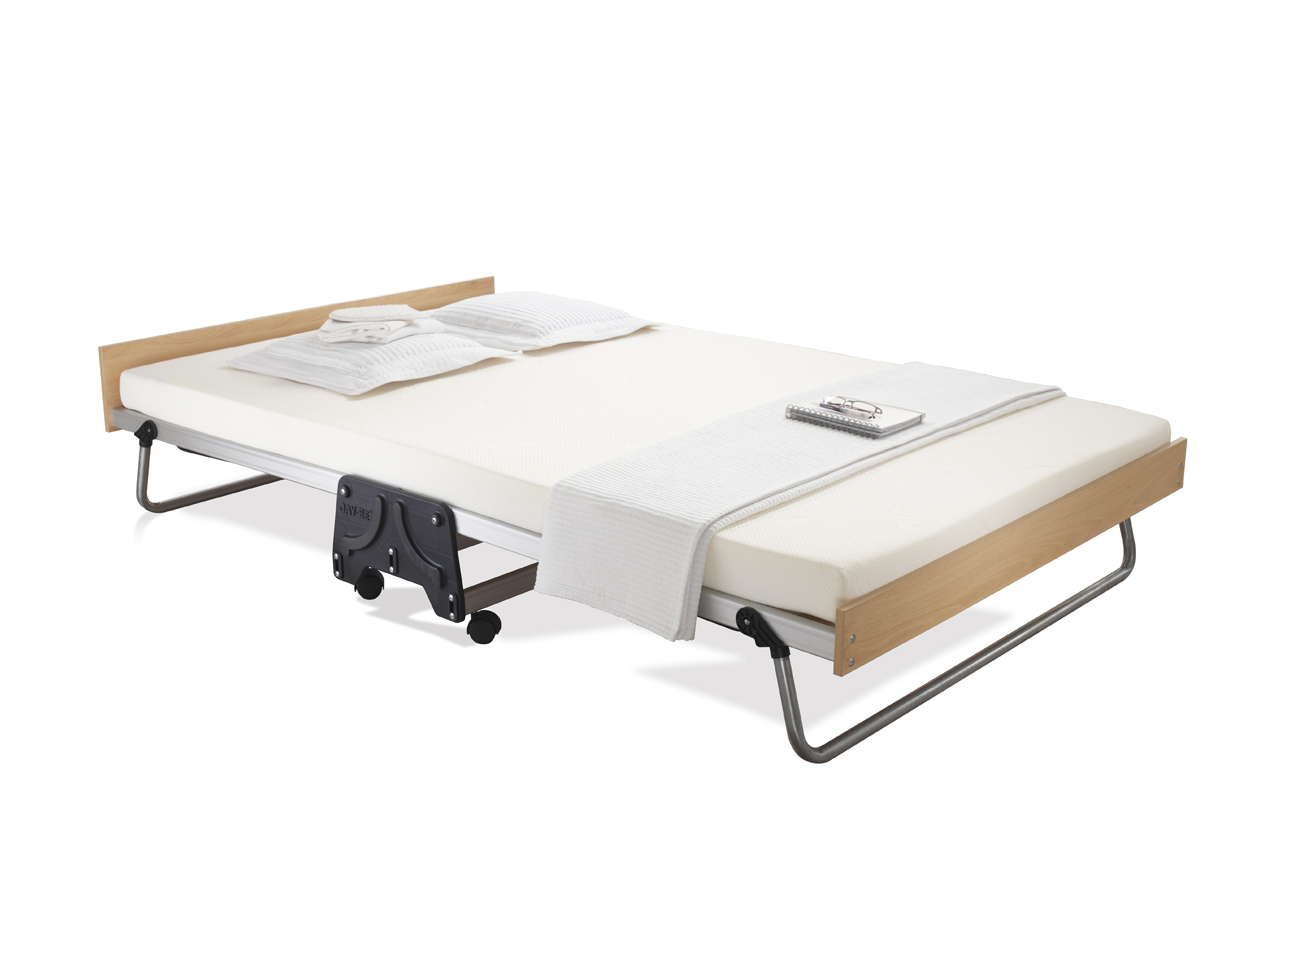 Jay-Be J-Bed® Memory Foam Folding Bed - double